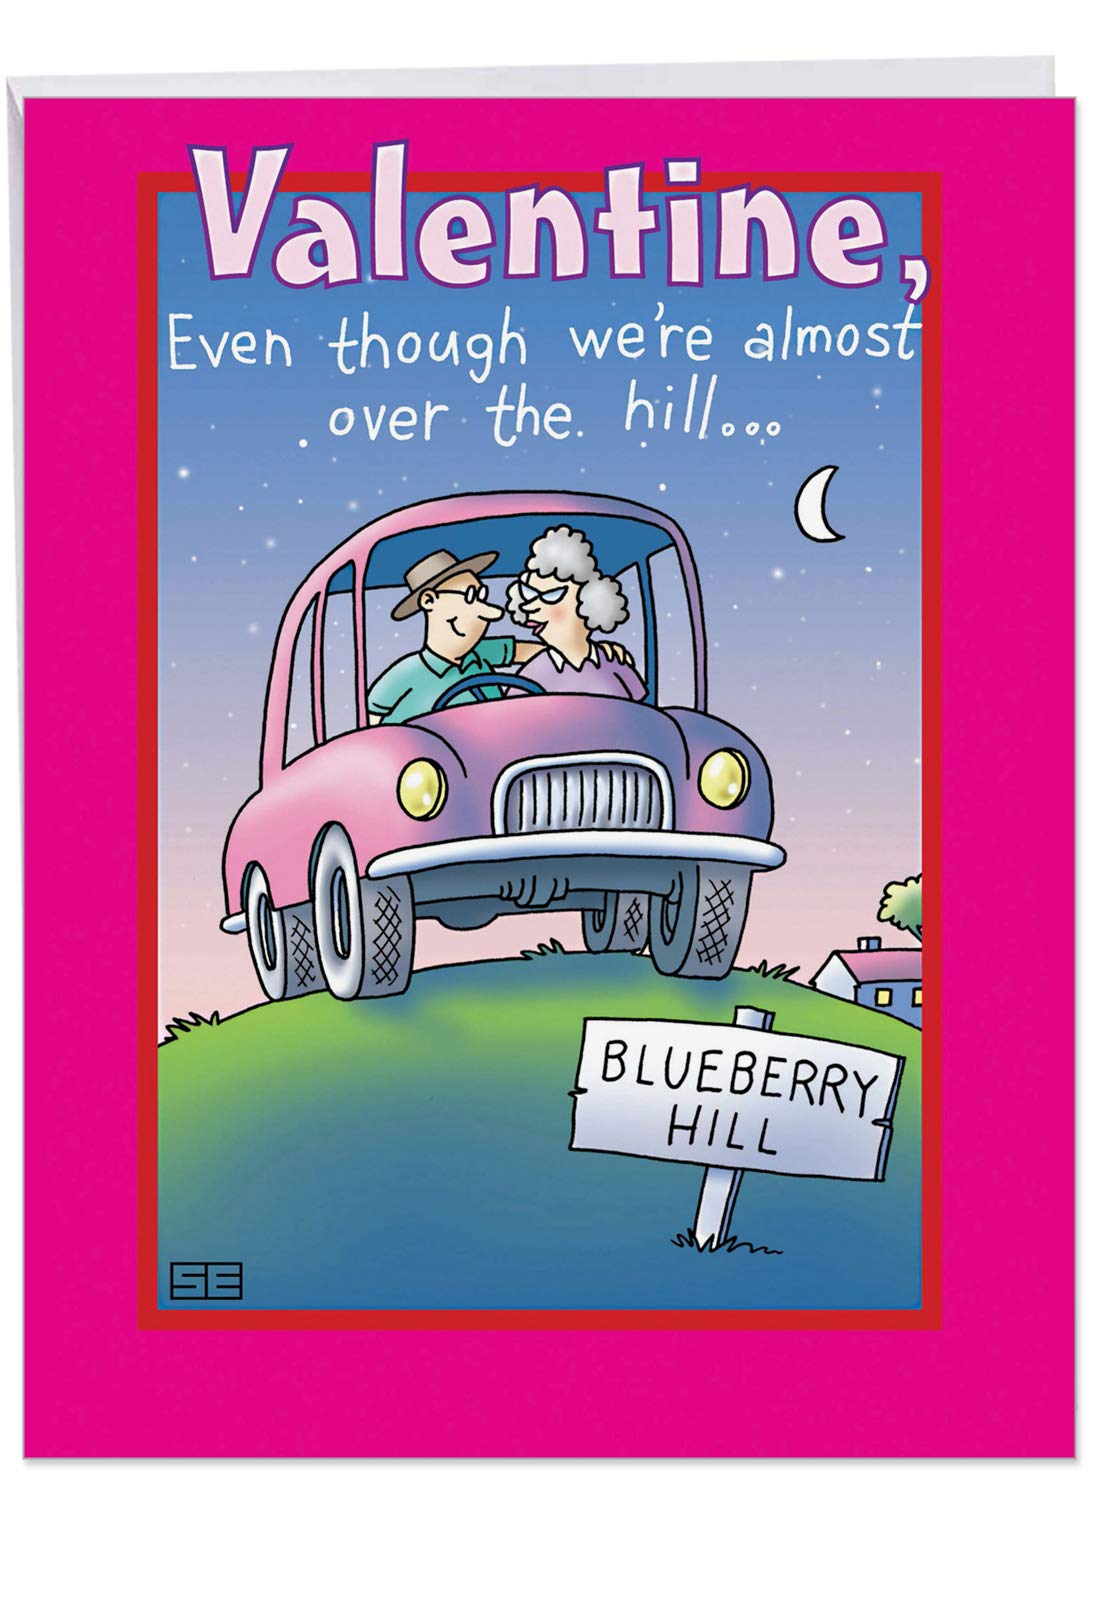 Jumbo Over the Hill My Thrill Valentines Day Card w/ Envelope Jumbo 8.5 x 11 Inch - Old Couple in Parked Car - Cartoon Stationery Personalized Stationery Love Letter, V-Day Gift J2427